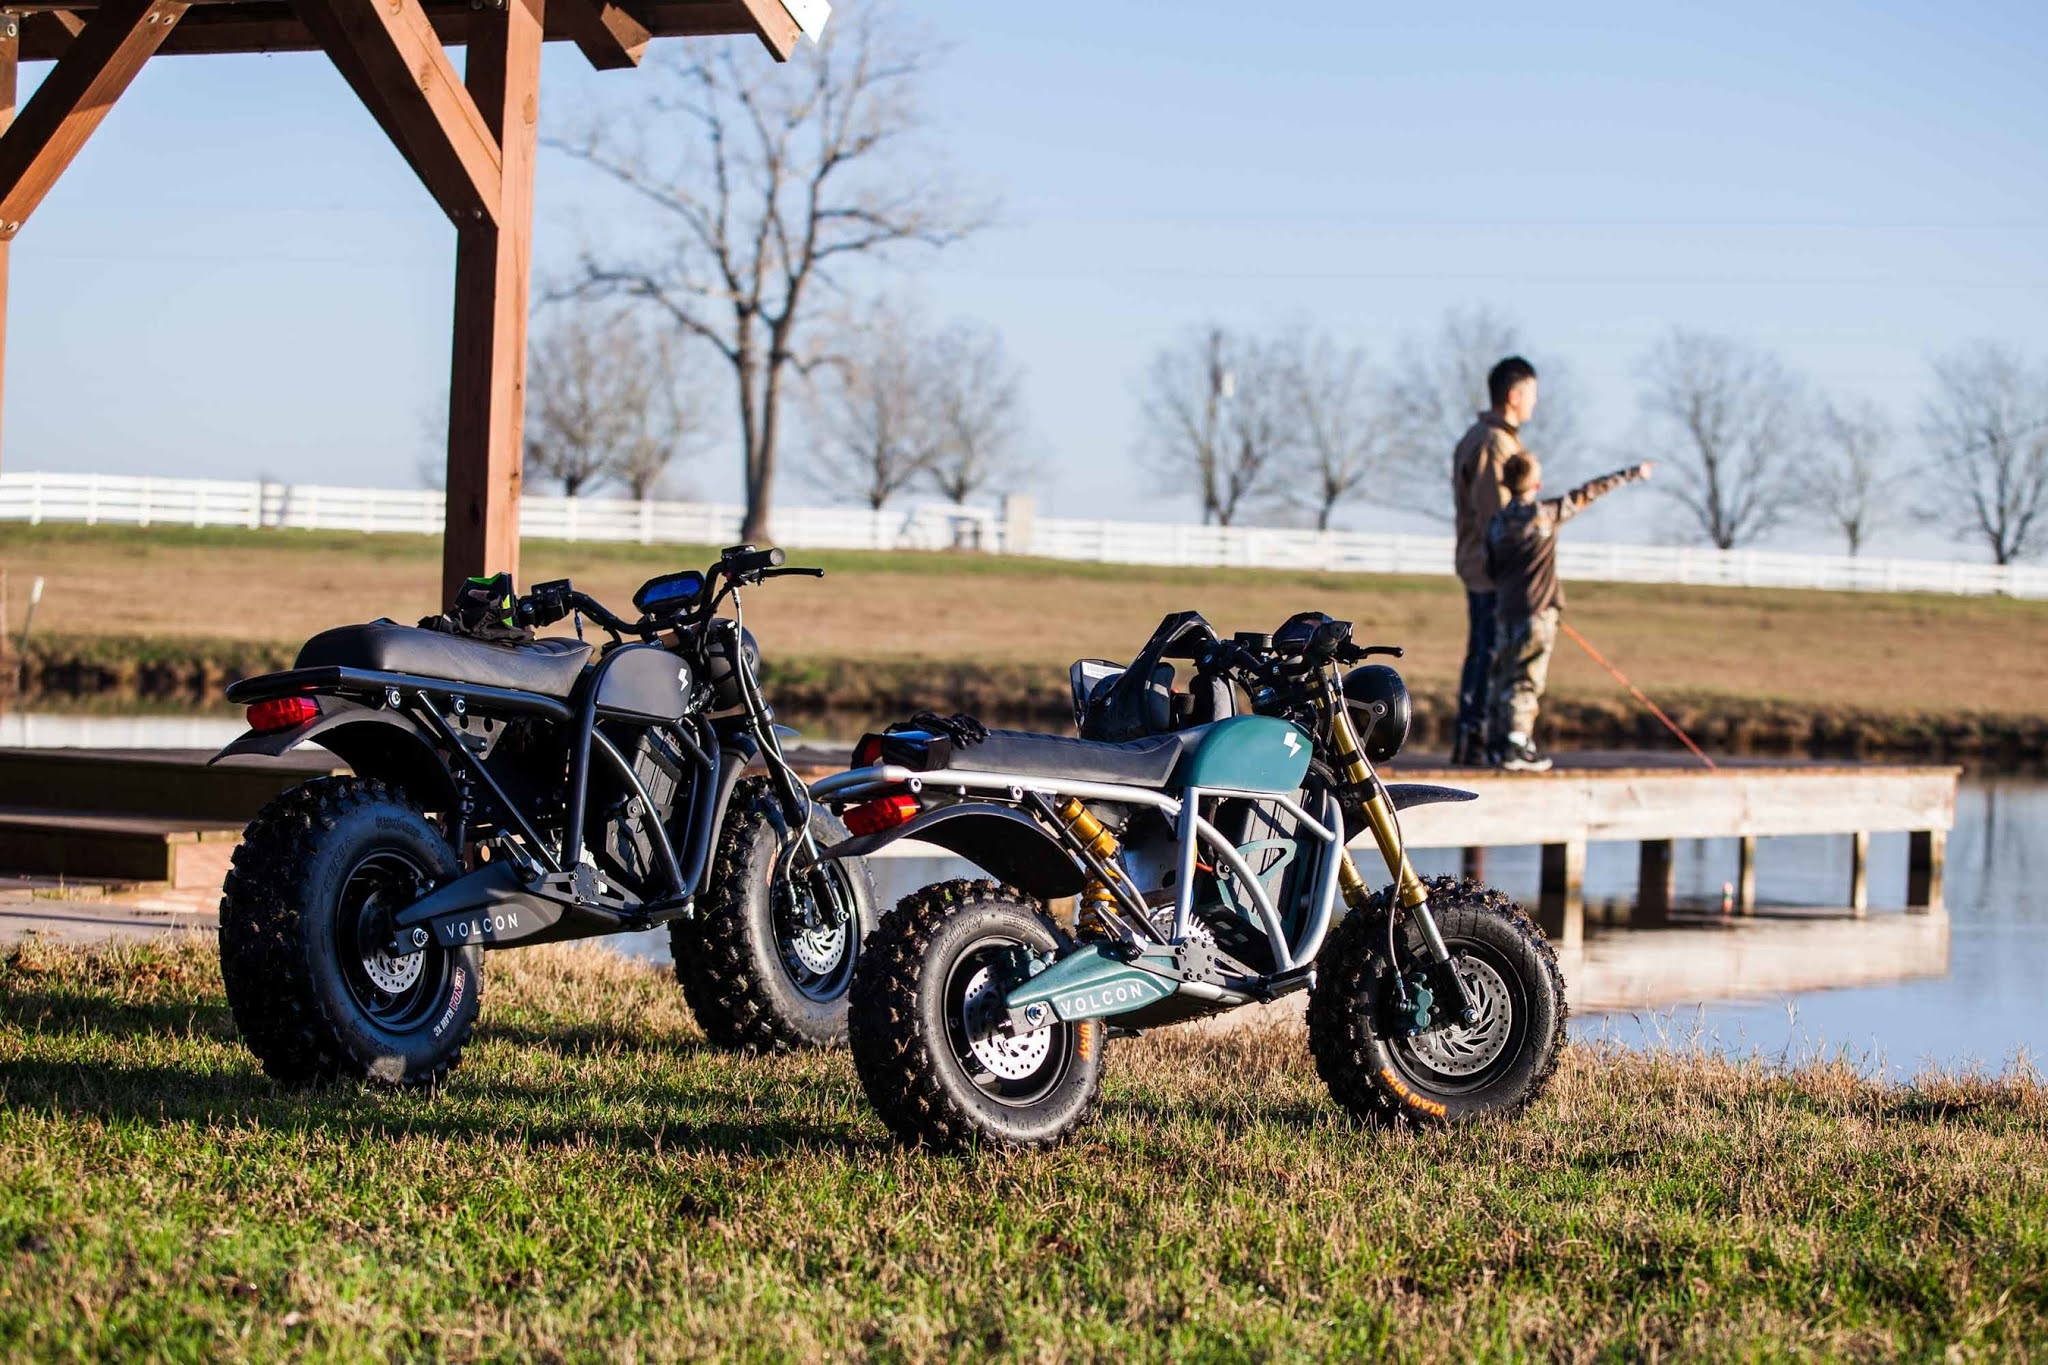 Volcon Announces All-Electric Motorcycle for Kids, Aptly Named 'The Runt'